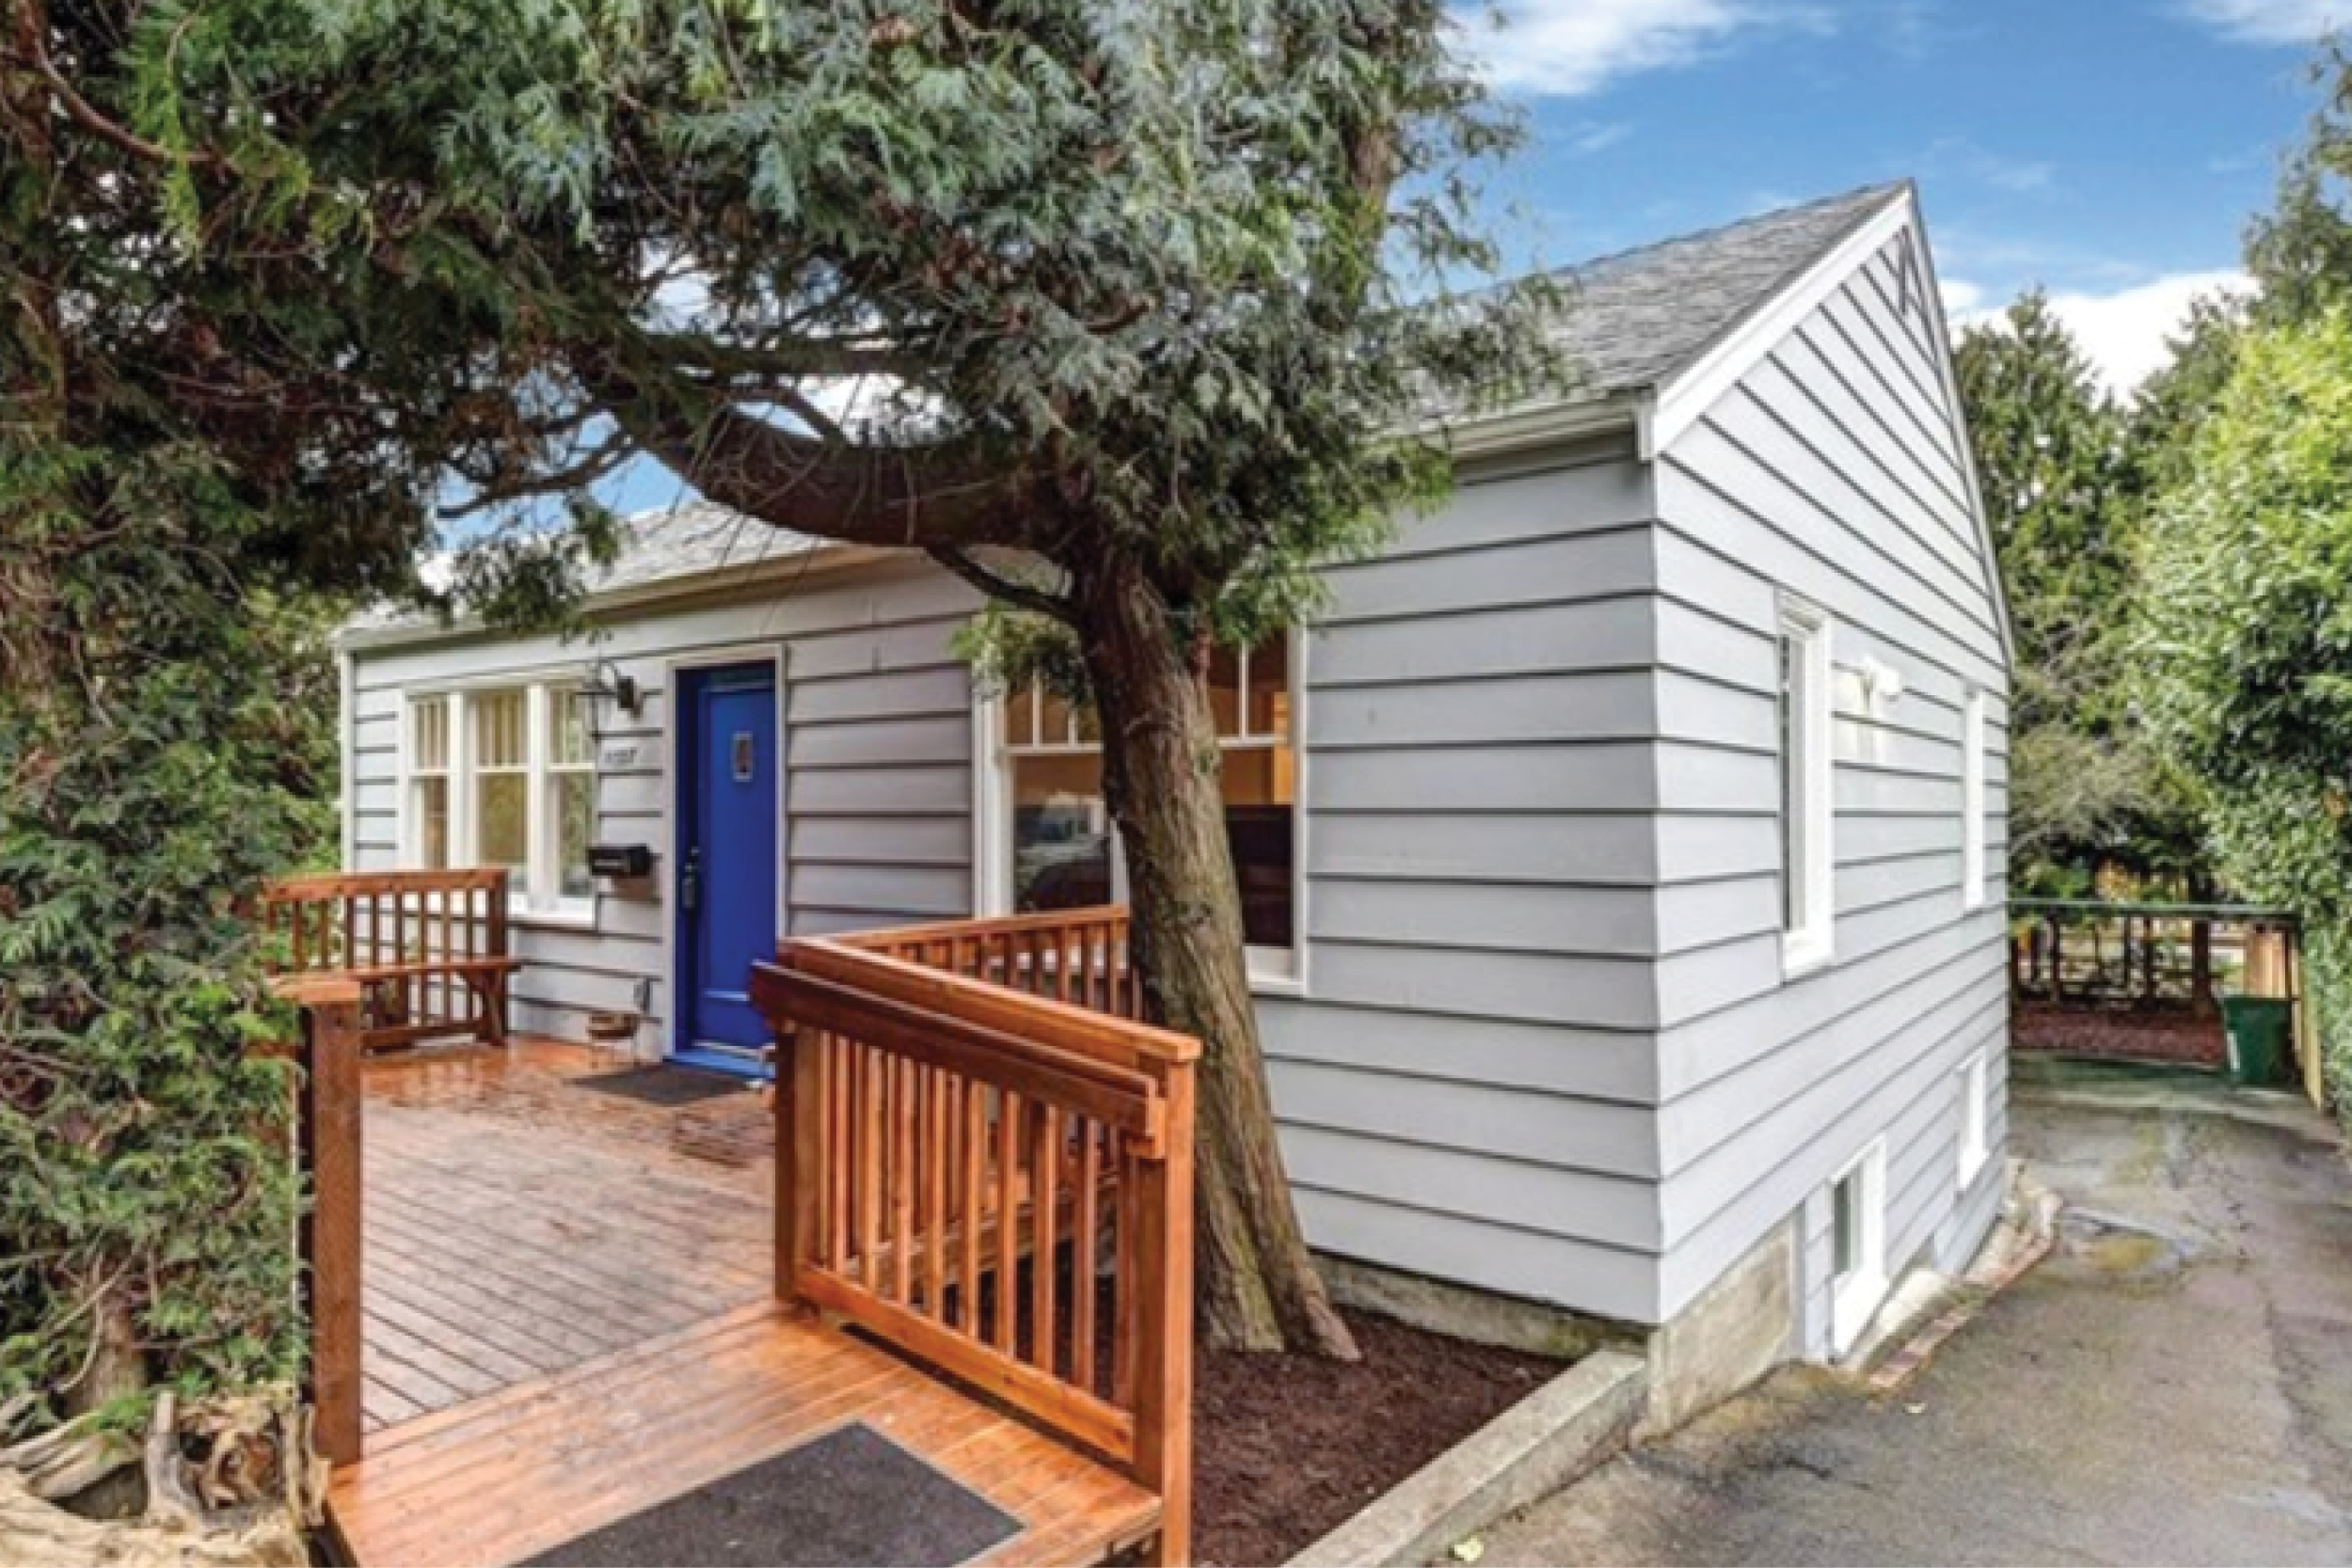 Northgate    Sold for $675,000 May 2017